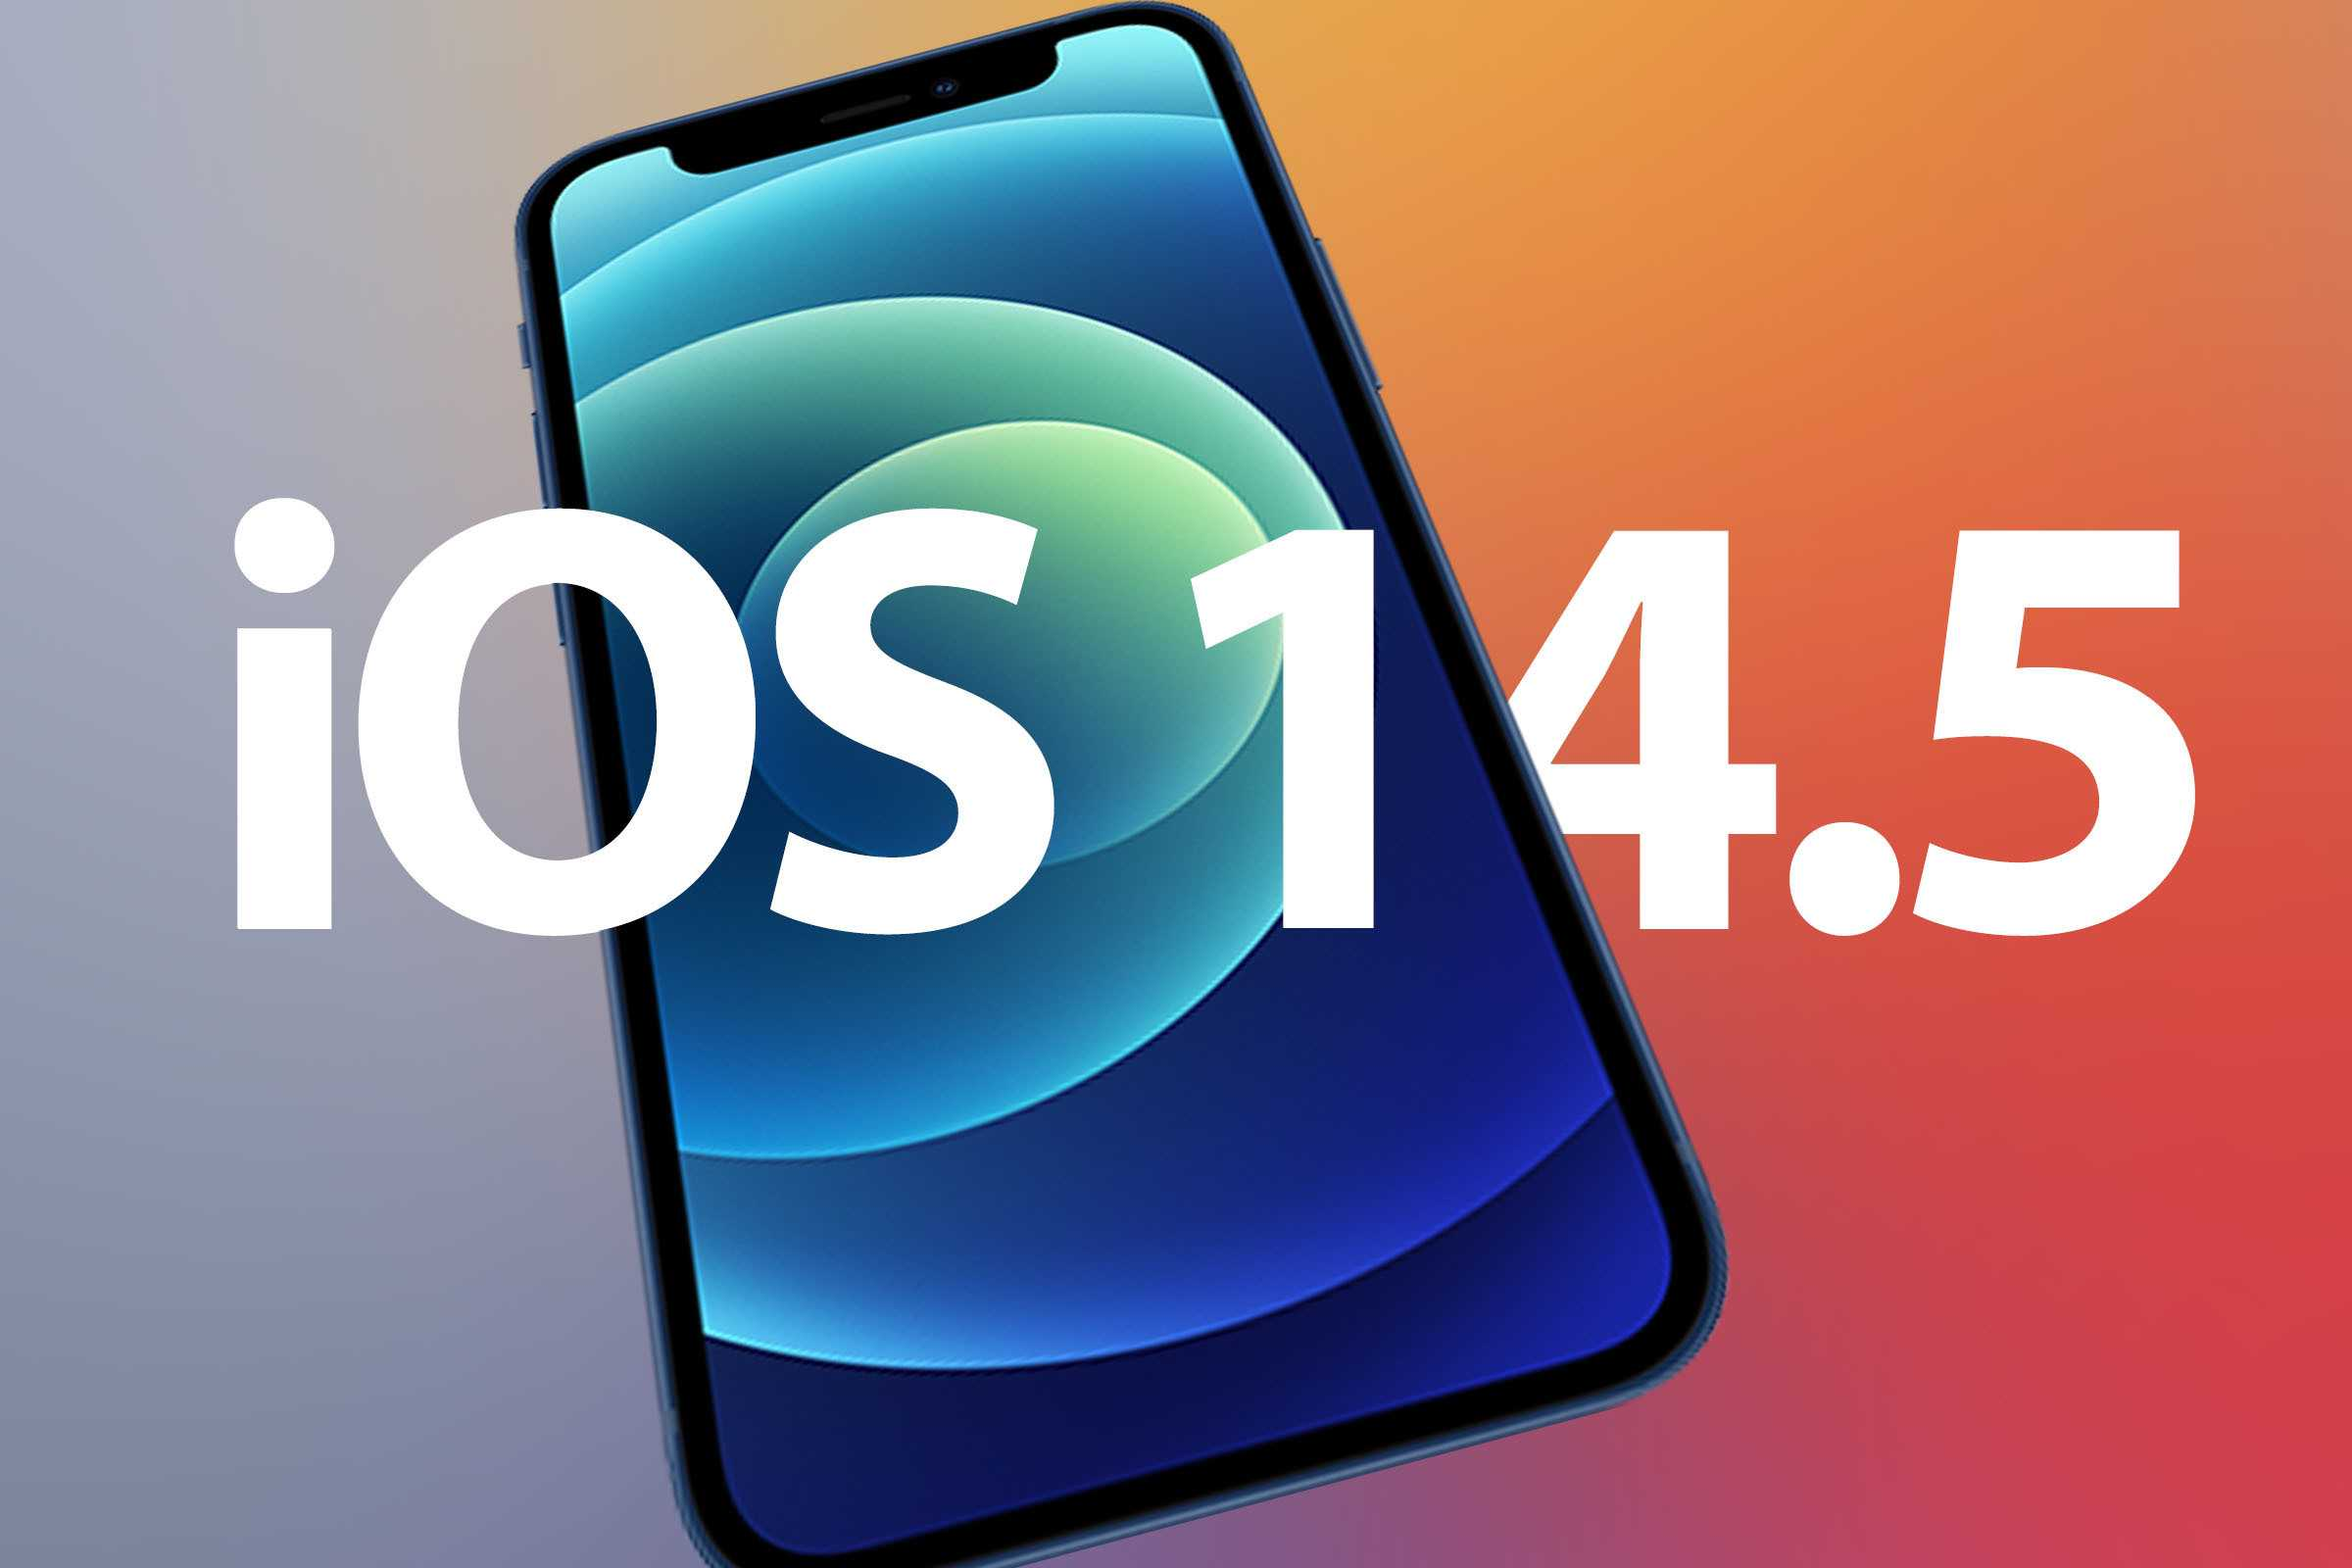 Apple Iphone Will Release IOS 14.5 And IPadOS 14.5 Next Week In Pakistan